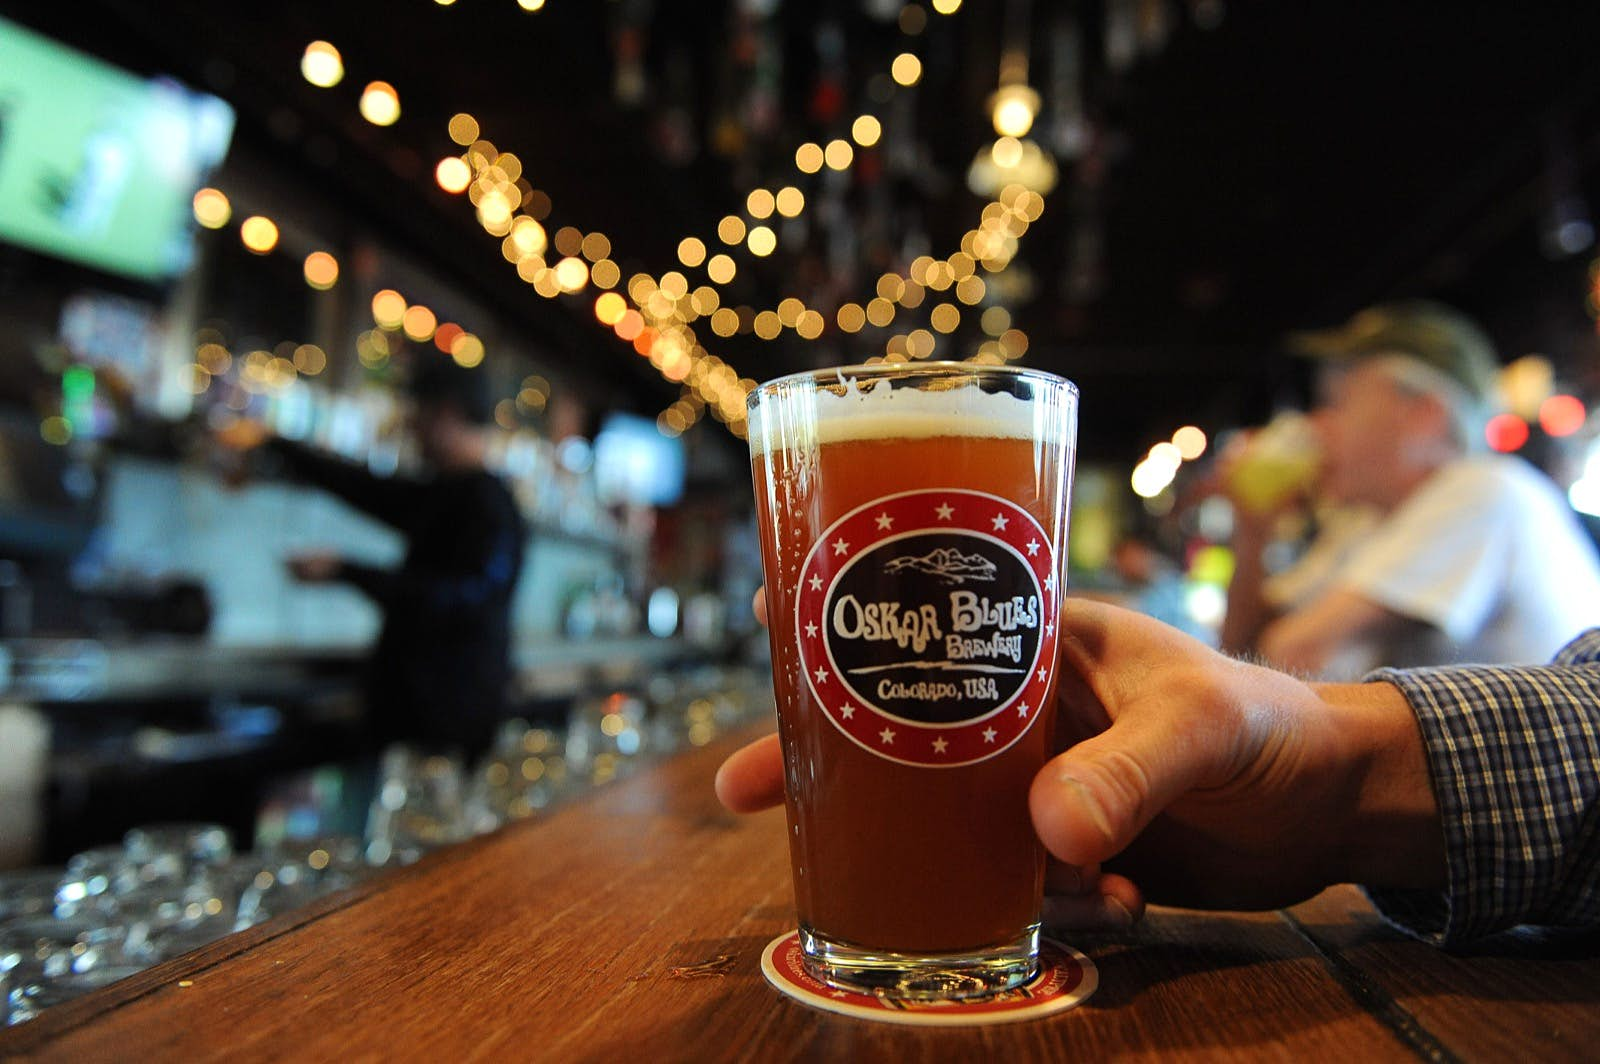 A man holds a glass of amber-colored beer resting on a circular coaster on a wooden bar. A collection of patrons drinking beer can be seen in the background. Oskar Blues is among one of the top craft breweries in the country.